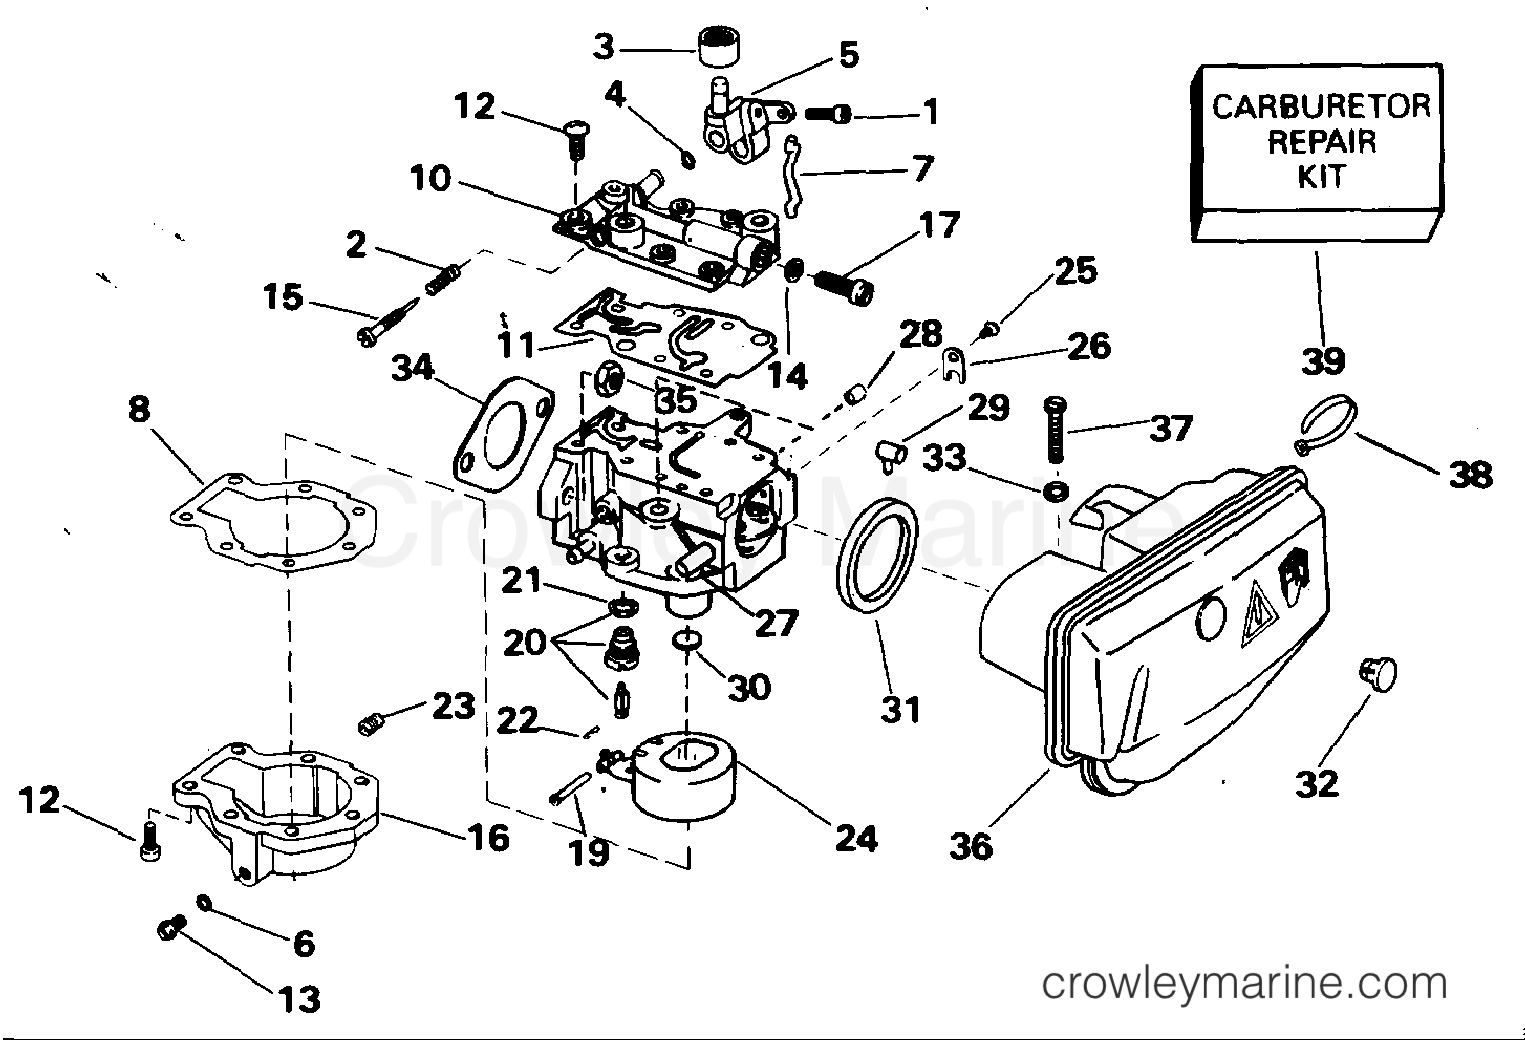 1984 johnson outboard wiring schematic